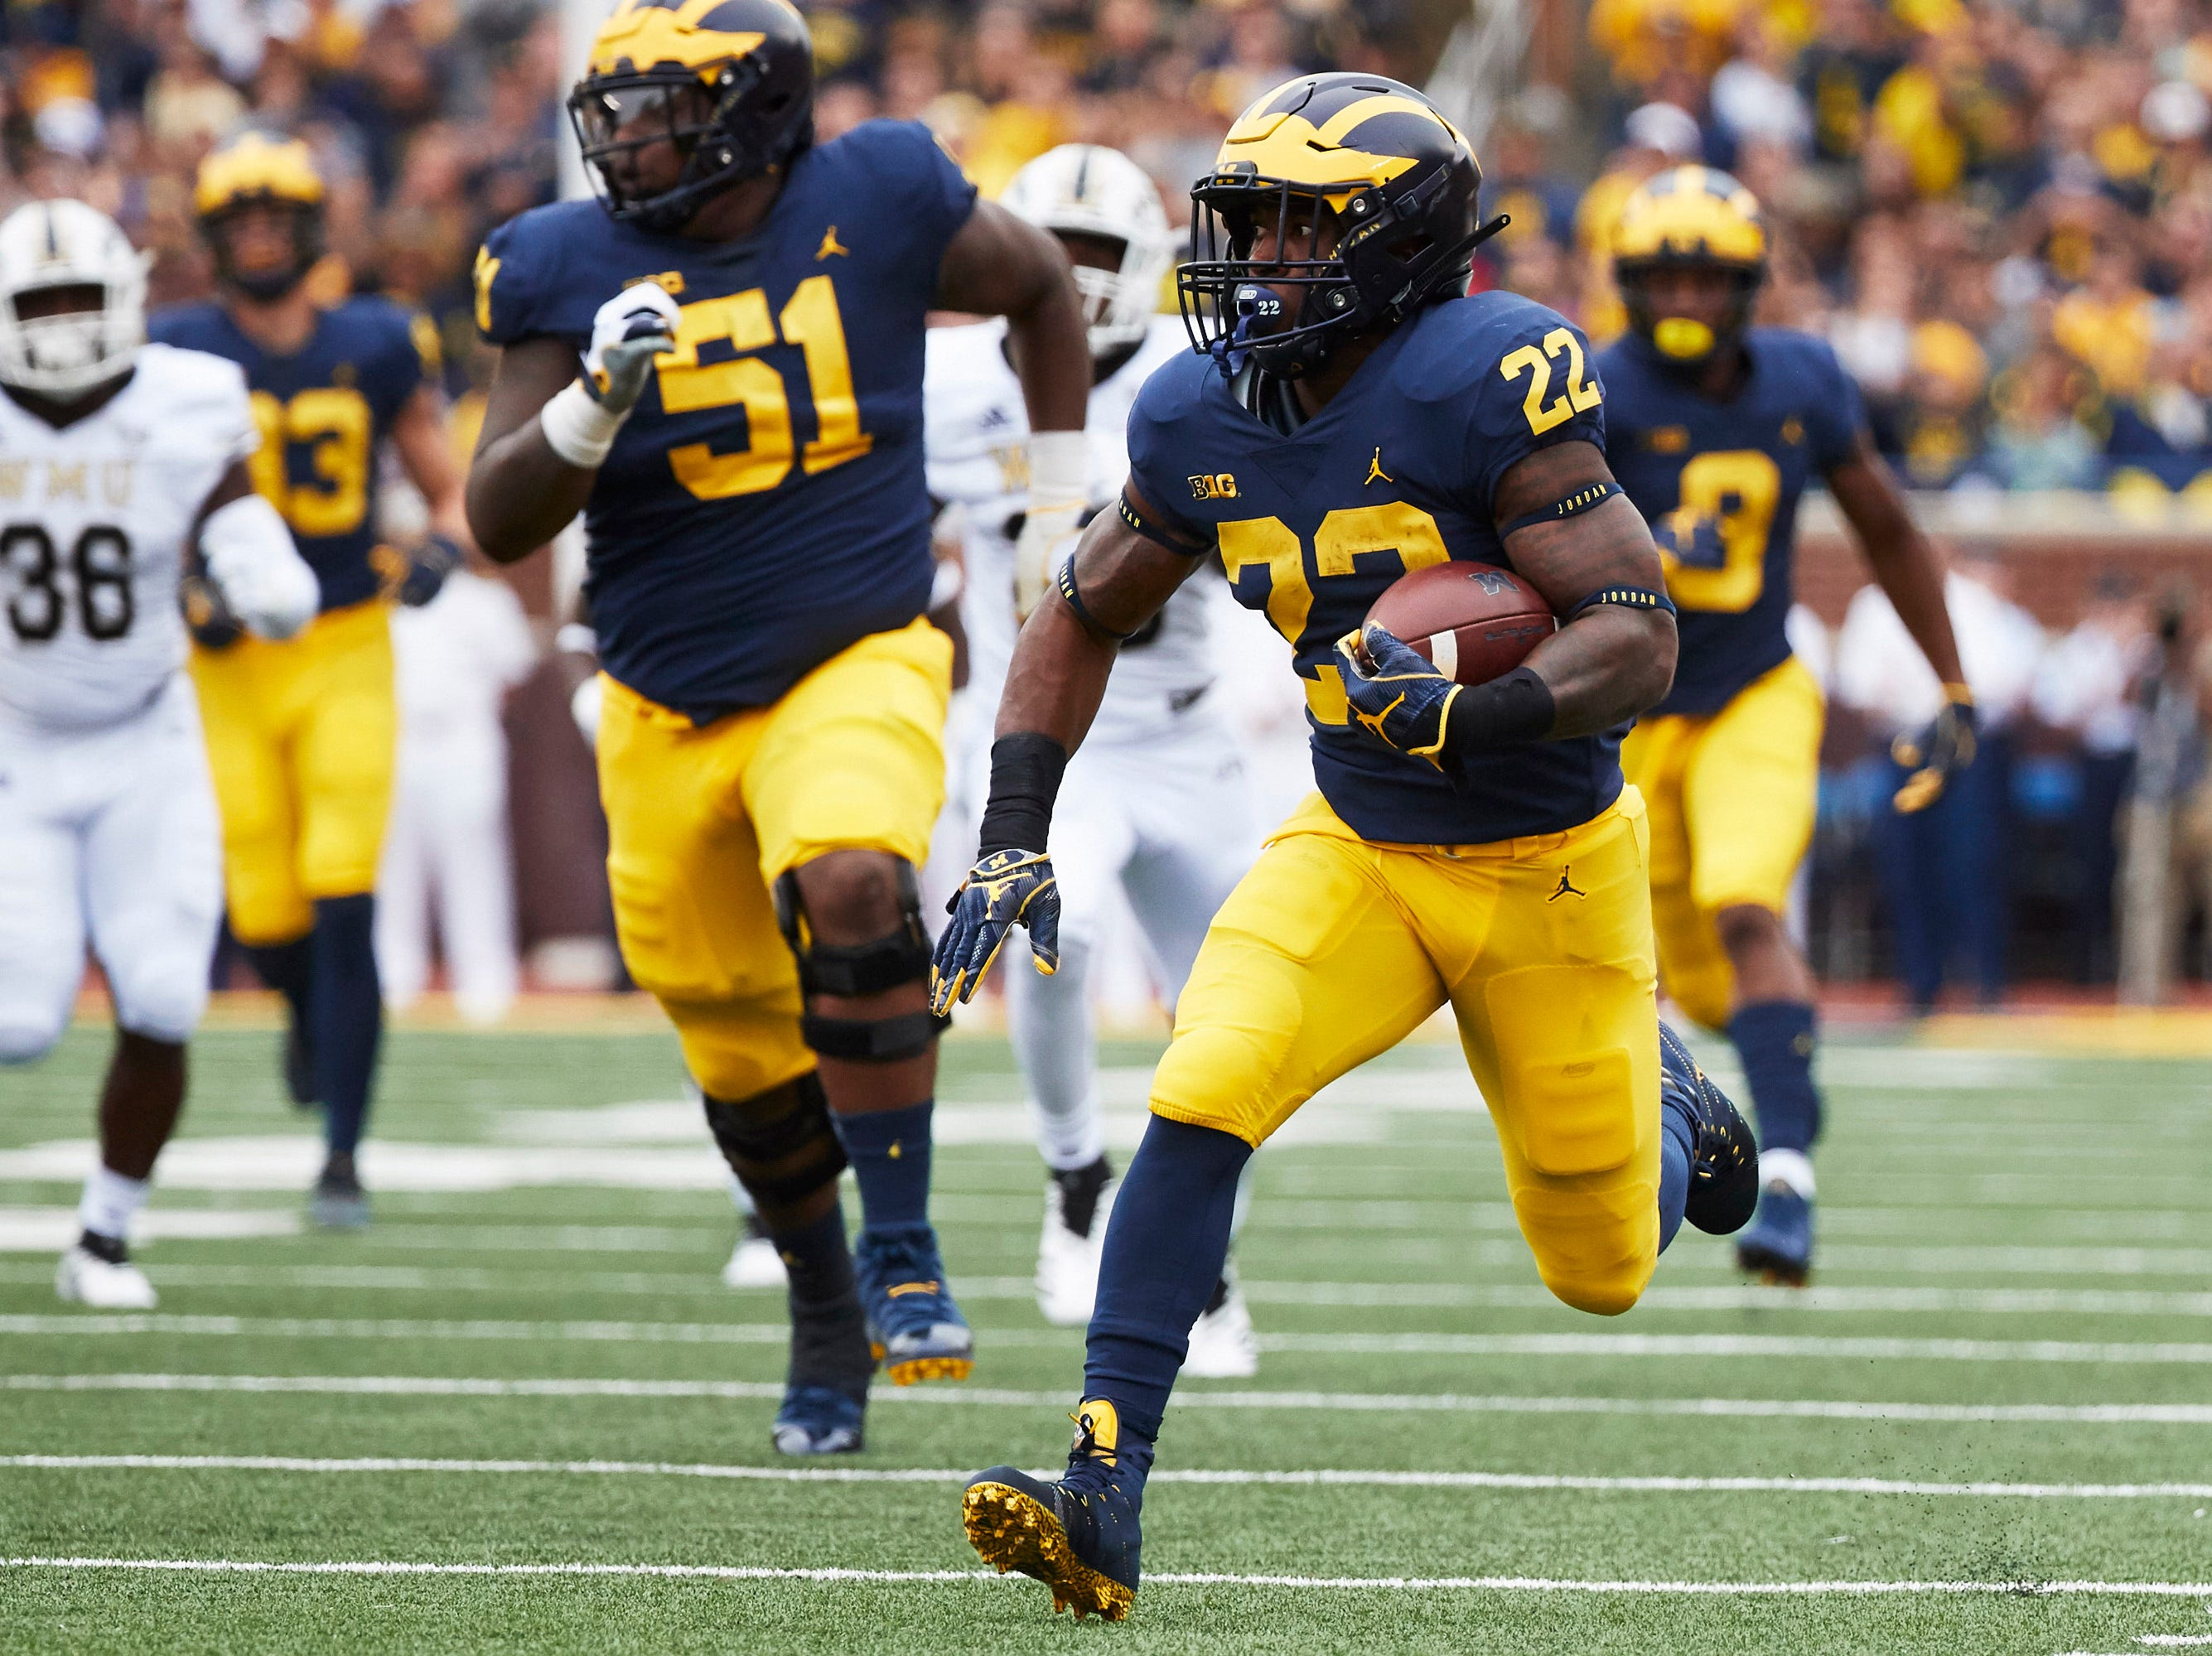 Sep 8, 2018; Ann Arbor, MI, USA; Michigan Wolverines running back Karan Higdon (22) rushes for a touchdown in the first half against the Western Michigan Broncos at Michigan Stadium. Mandatory Credit: Rick Osentoski-USA TODAY Sports